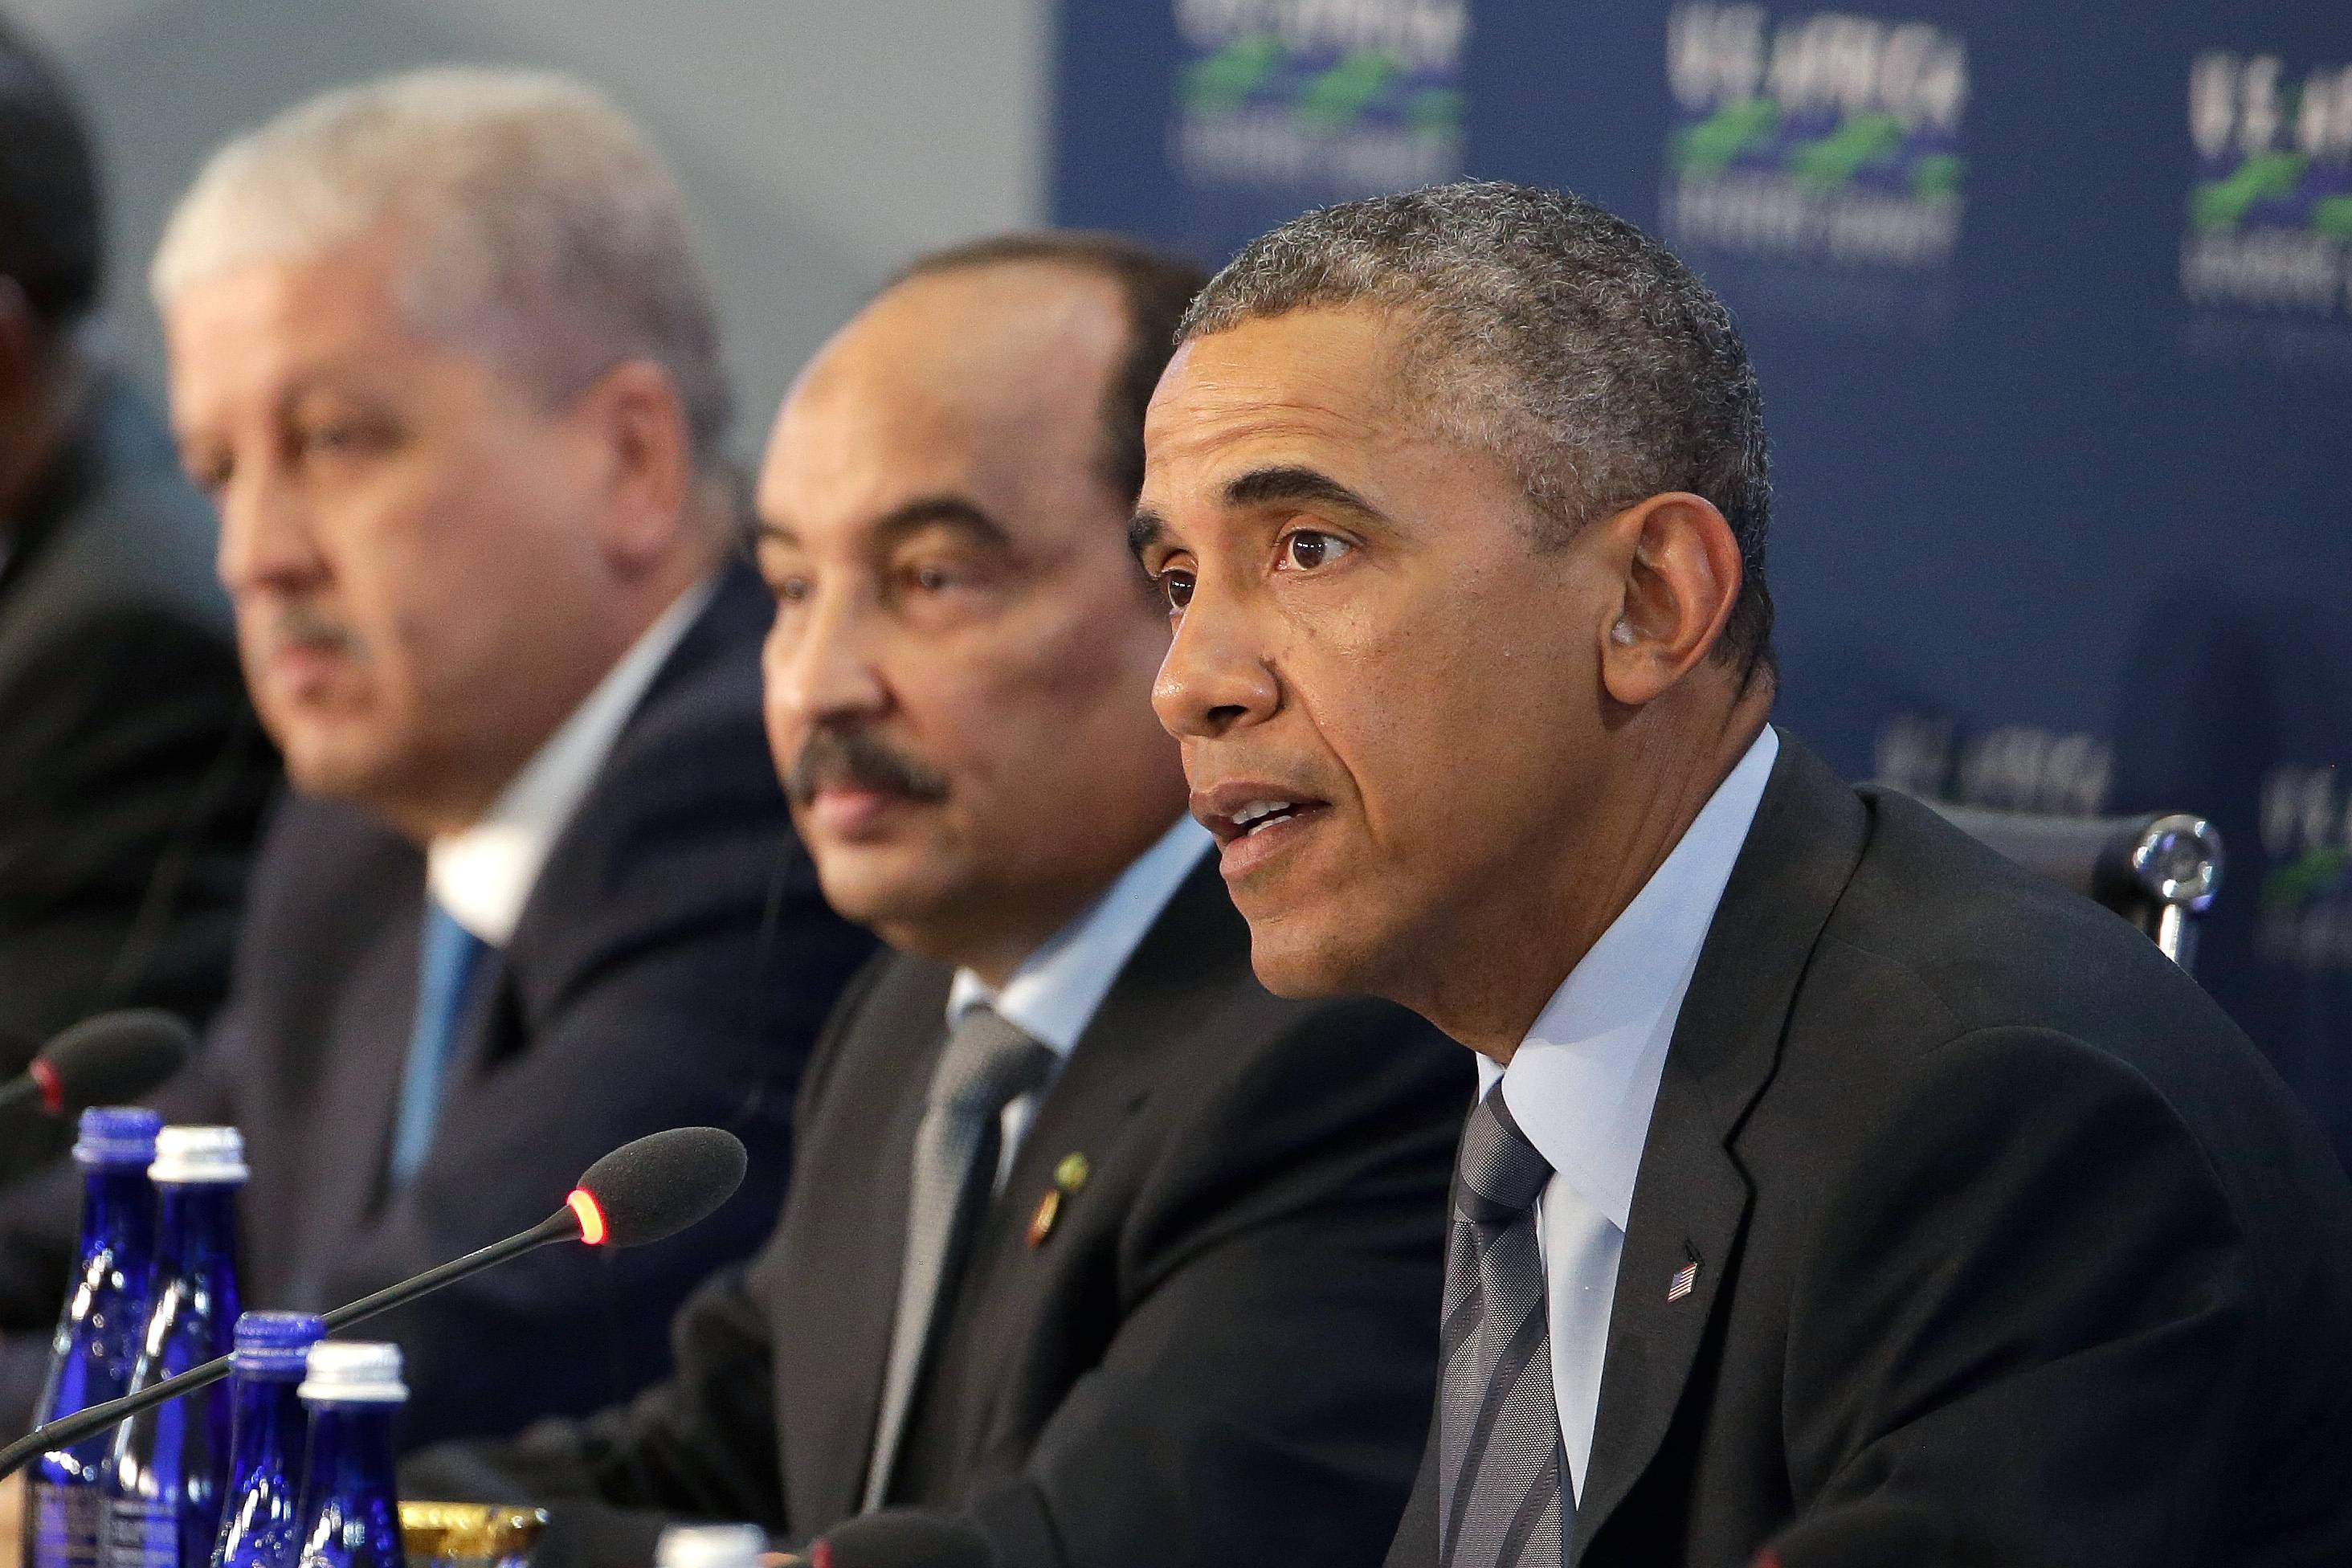 President Barack Obama, joined by Prime Minister of Algeria Abdelmalek Sellal, left, and President of Mauritania Mohamed Ould Abdel Aziz, center, speaks Wednesday during the opening session at the U.S. Africa Leaders Summit in Washington.